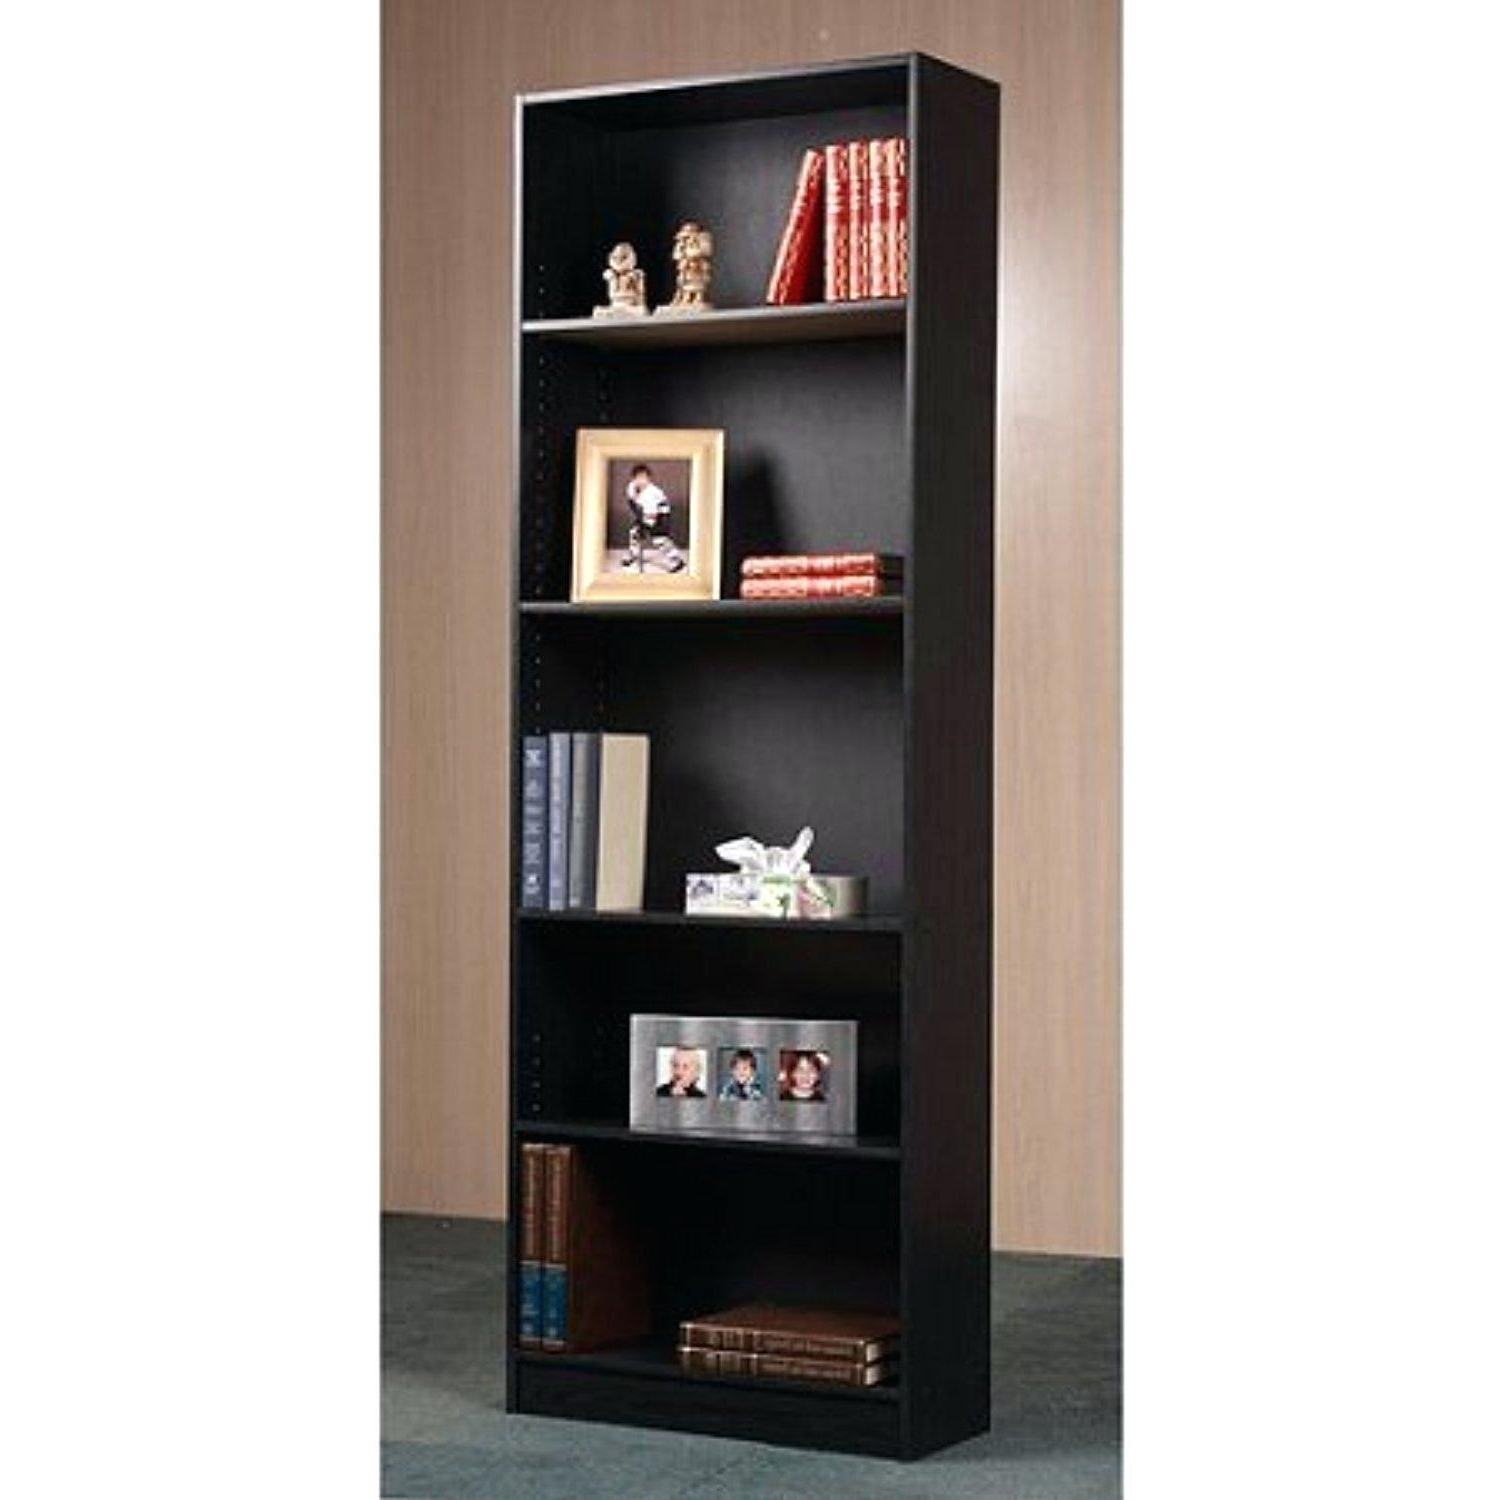 40 Inch Wide Bookcase – Zivile Regarding Most Current 40 Inch Wide Bookcases (View 1 of 15)